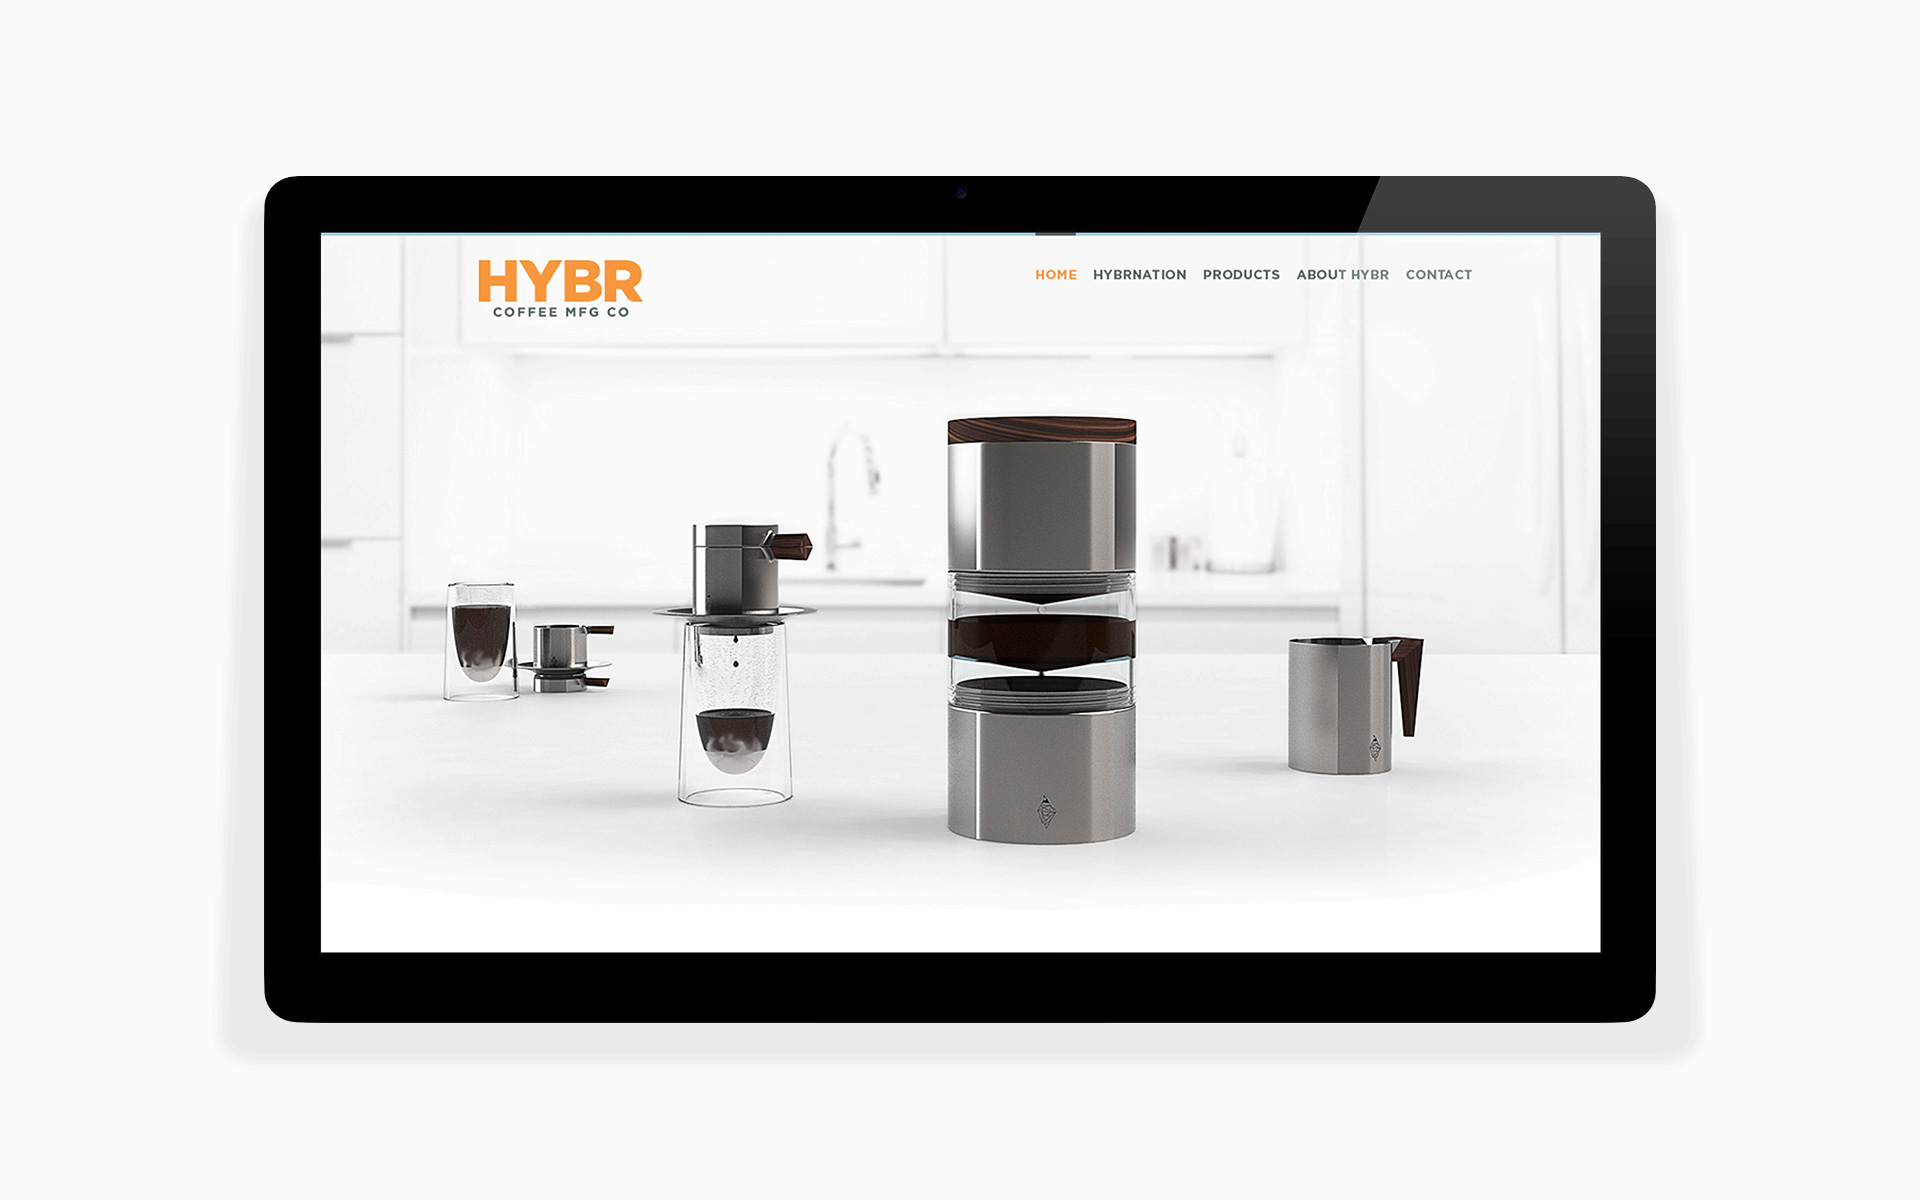 hybr coffee co website